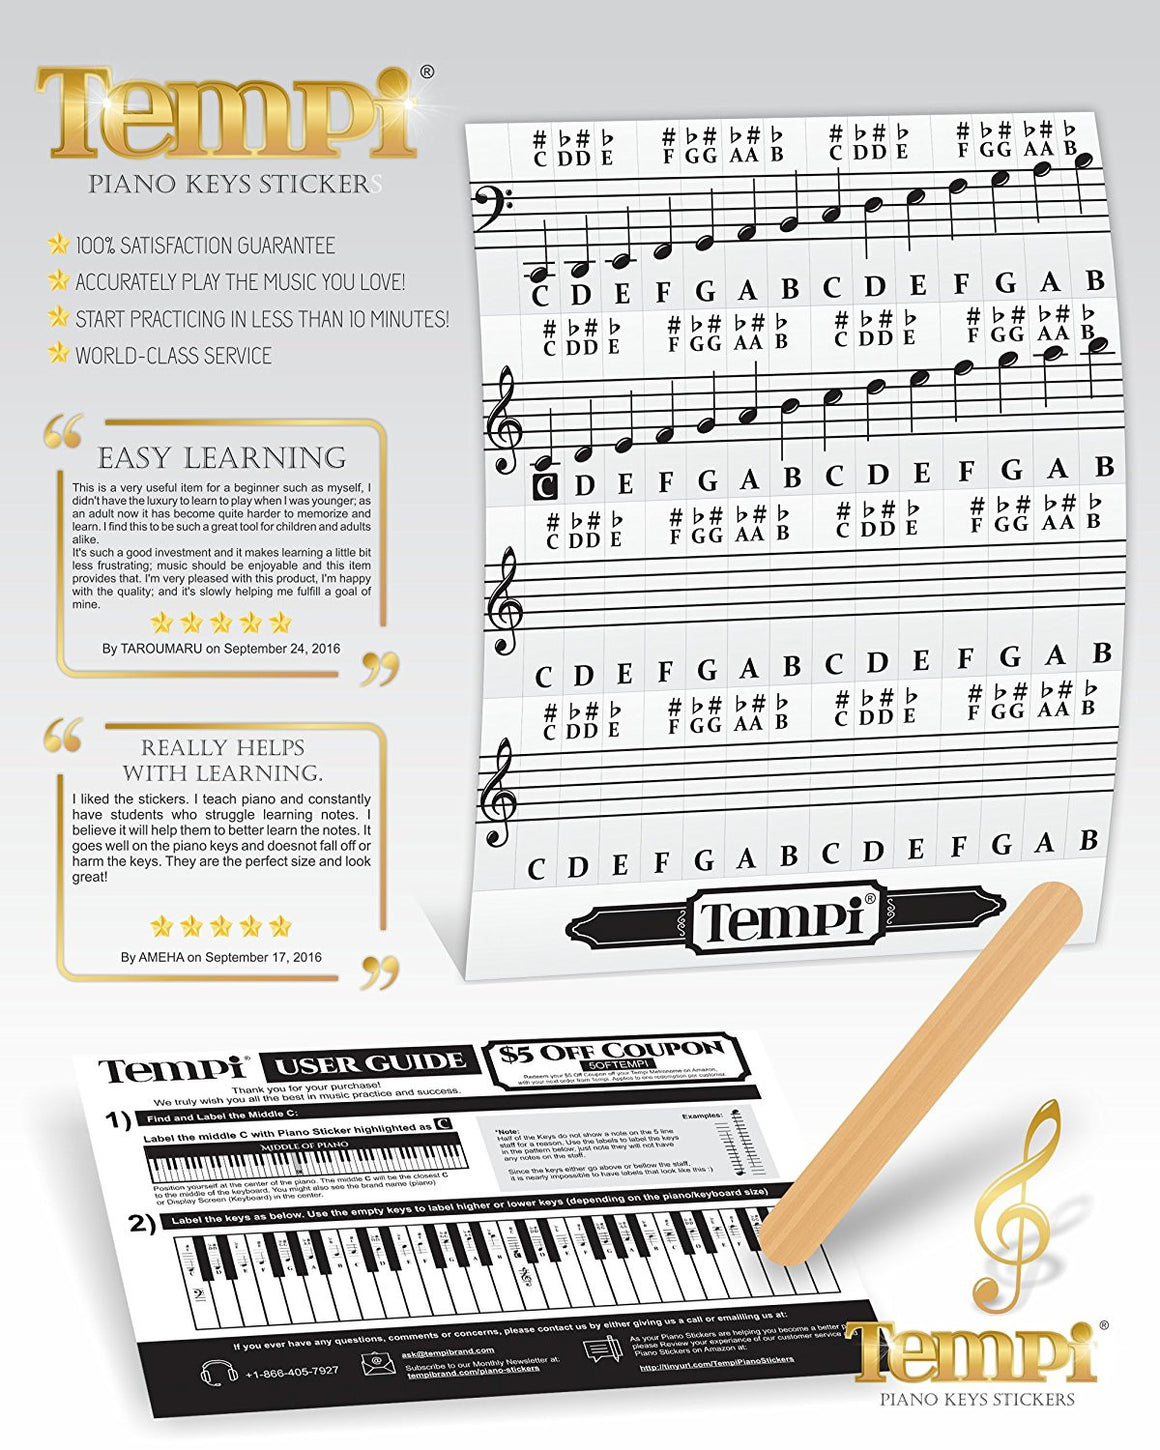 56 Piano Stickers Notes for Keyboard and Piano Music Practice Tools for Musicians and Pianists